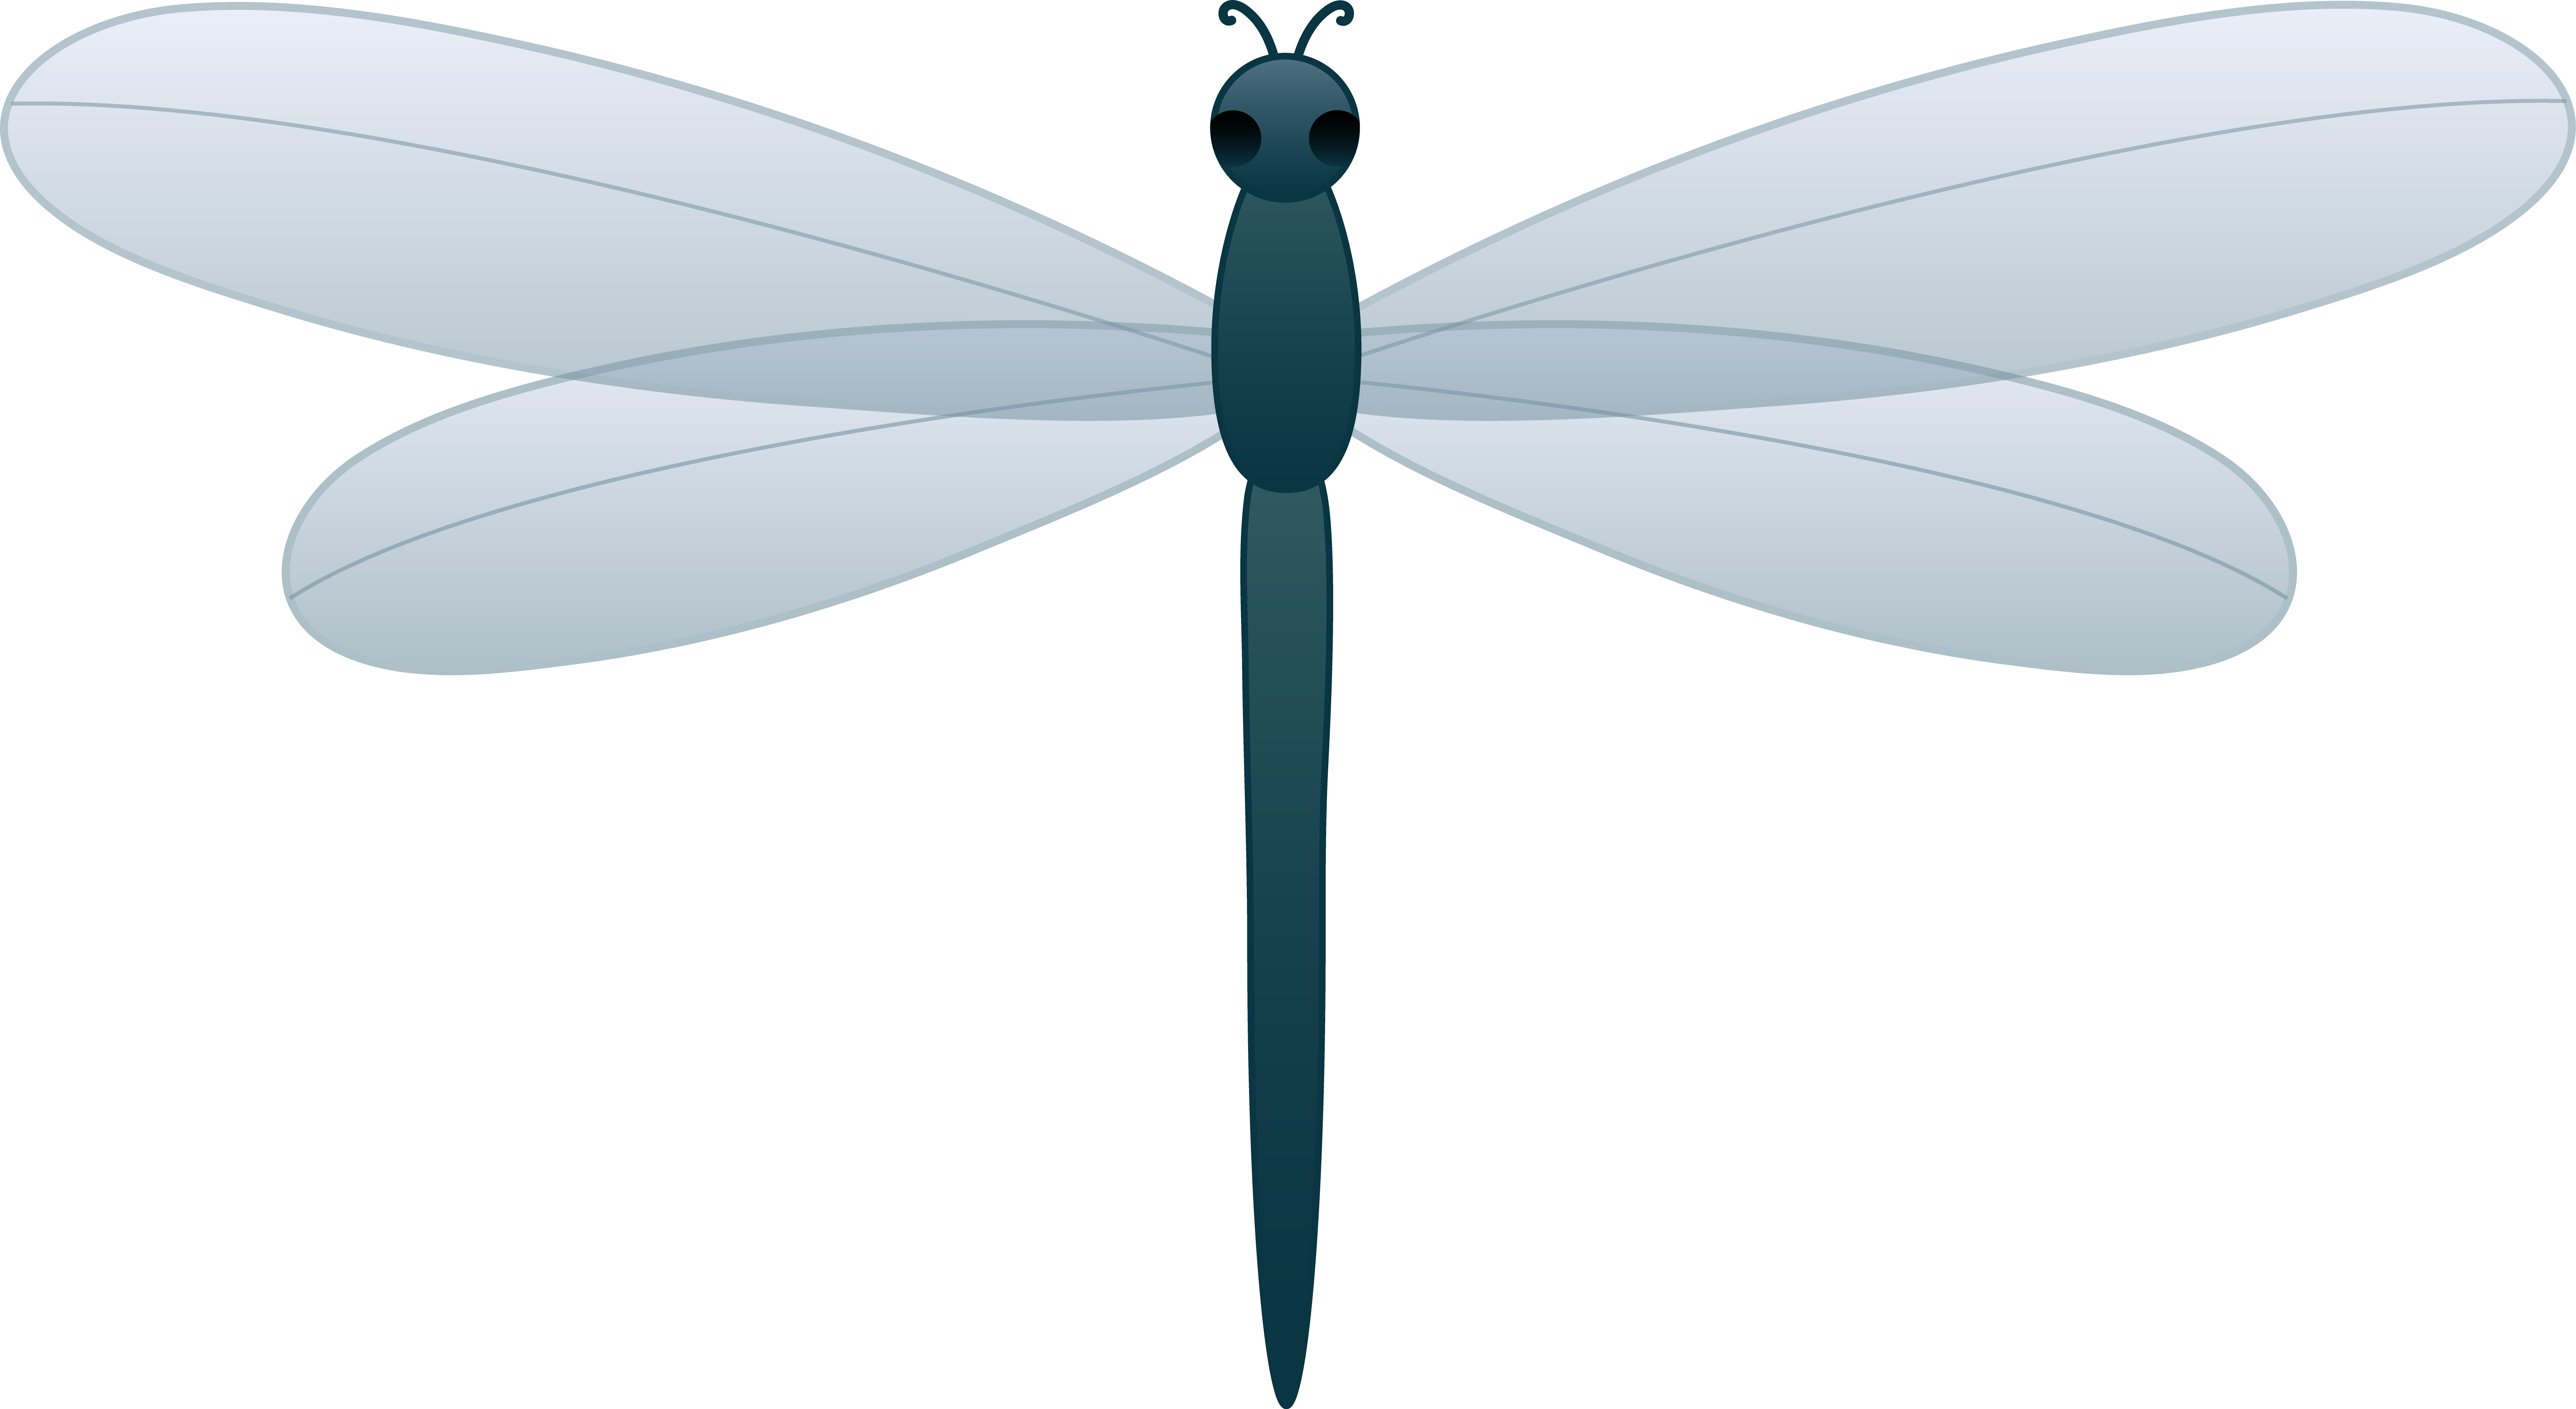 Dragonfly Clipart Free Download Clipart Free Clipart Image.